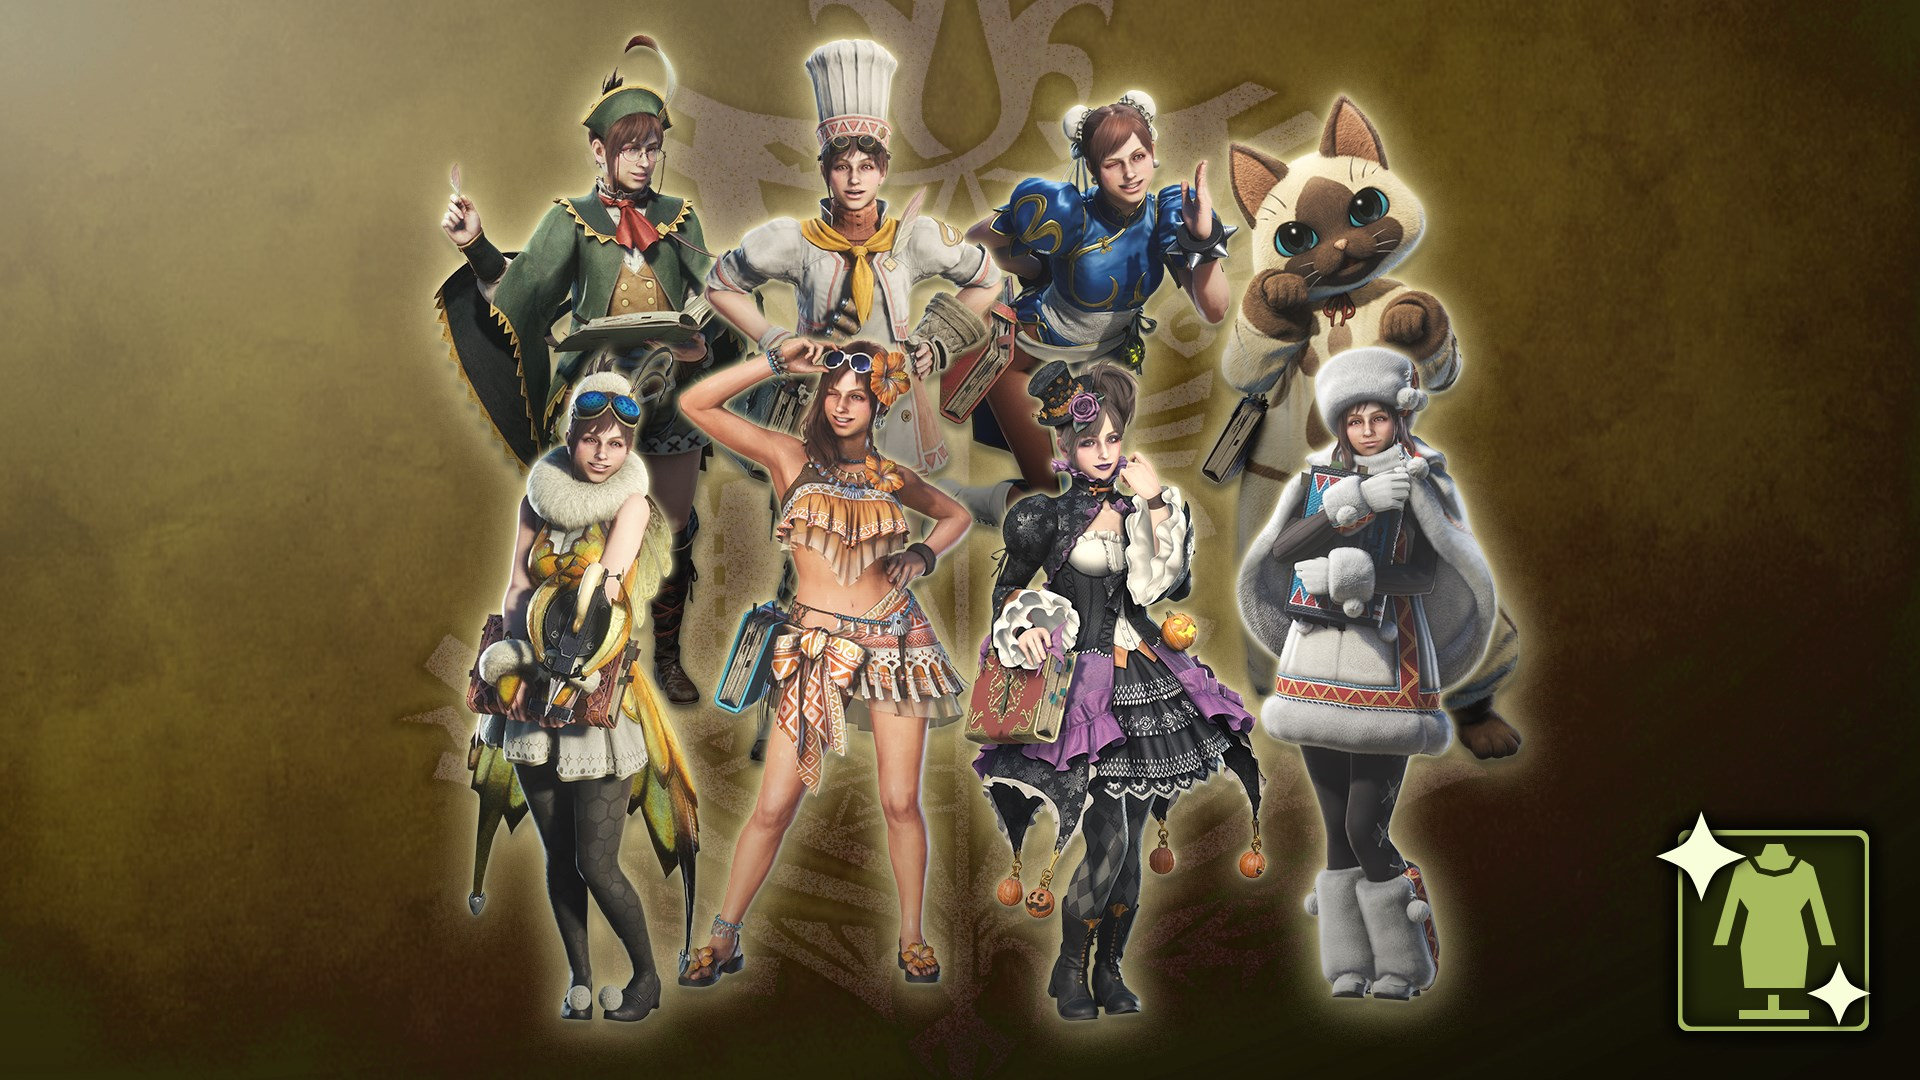 Monster Hunter: World - Complete Handler Costume Pack